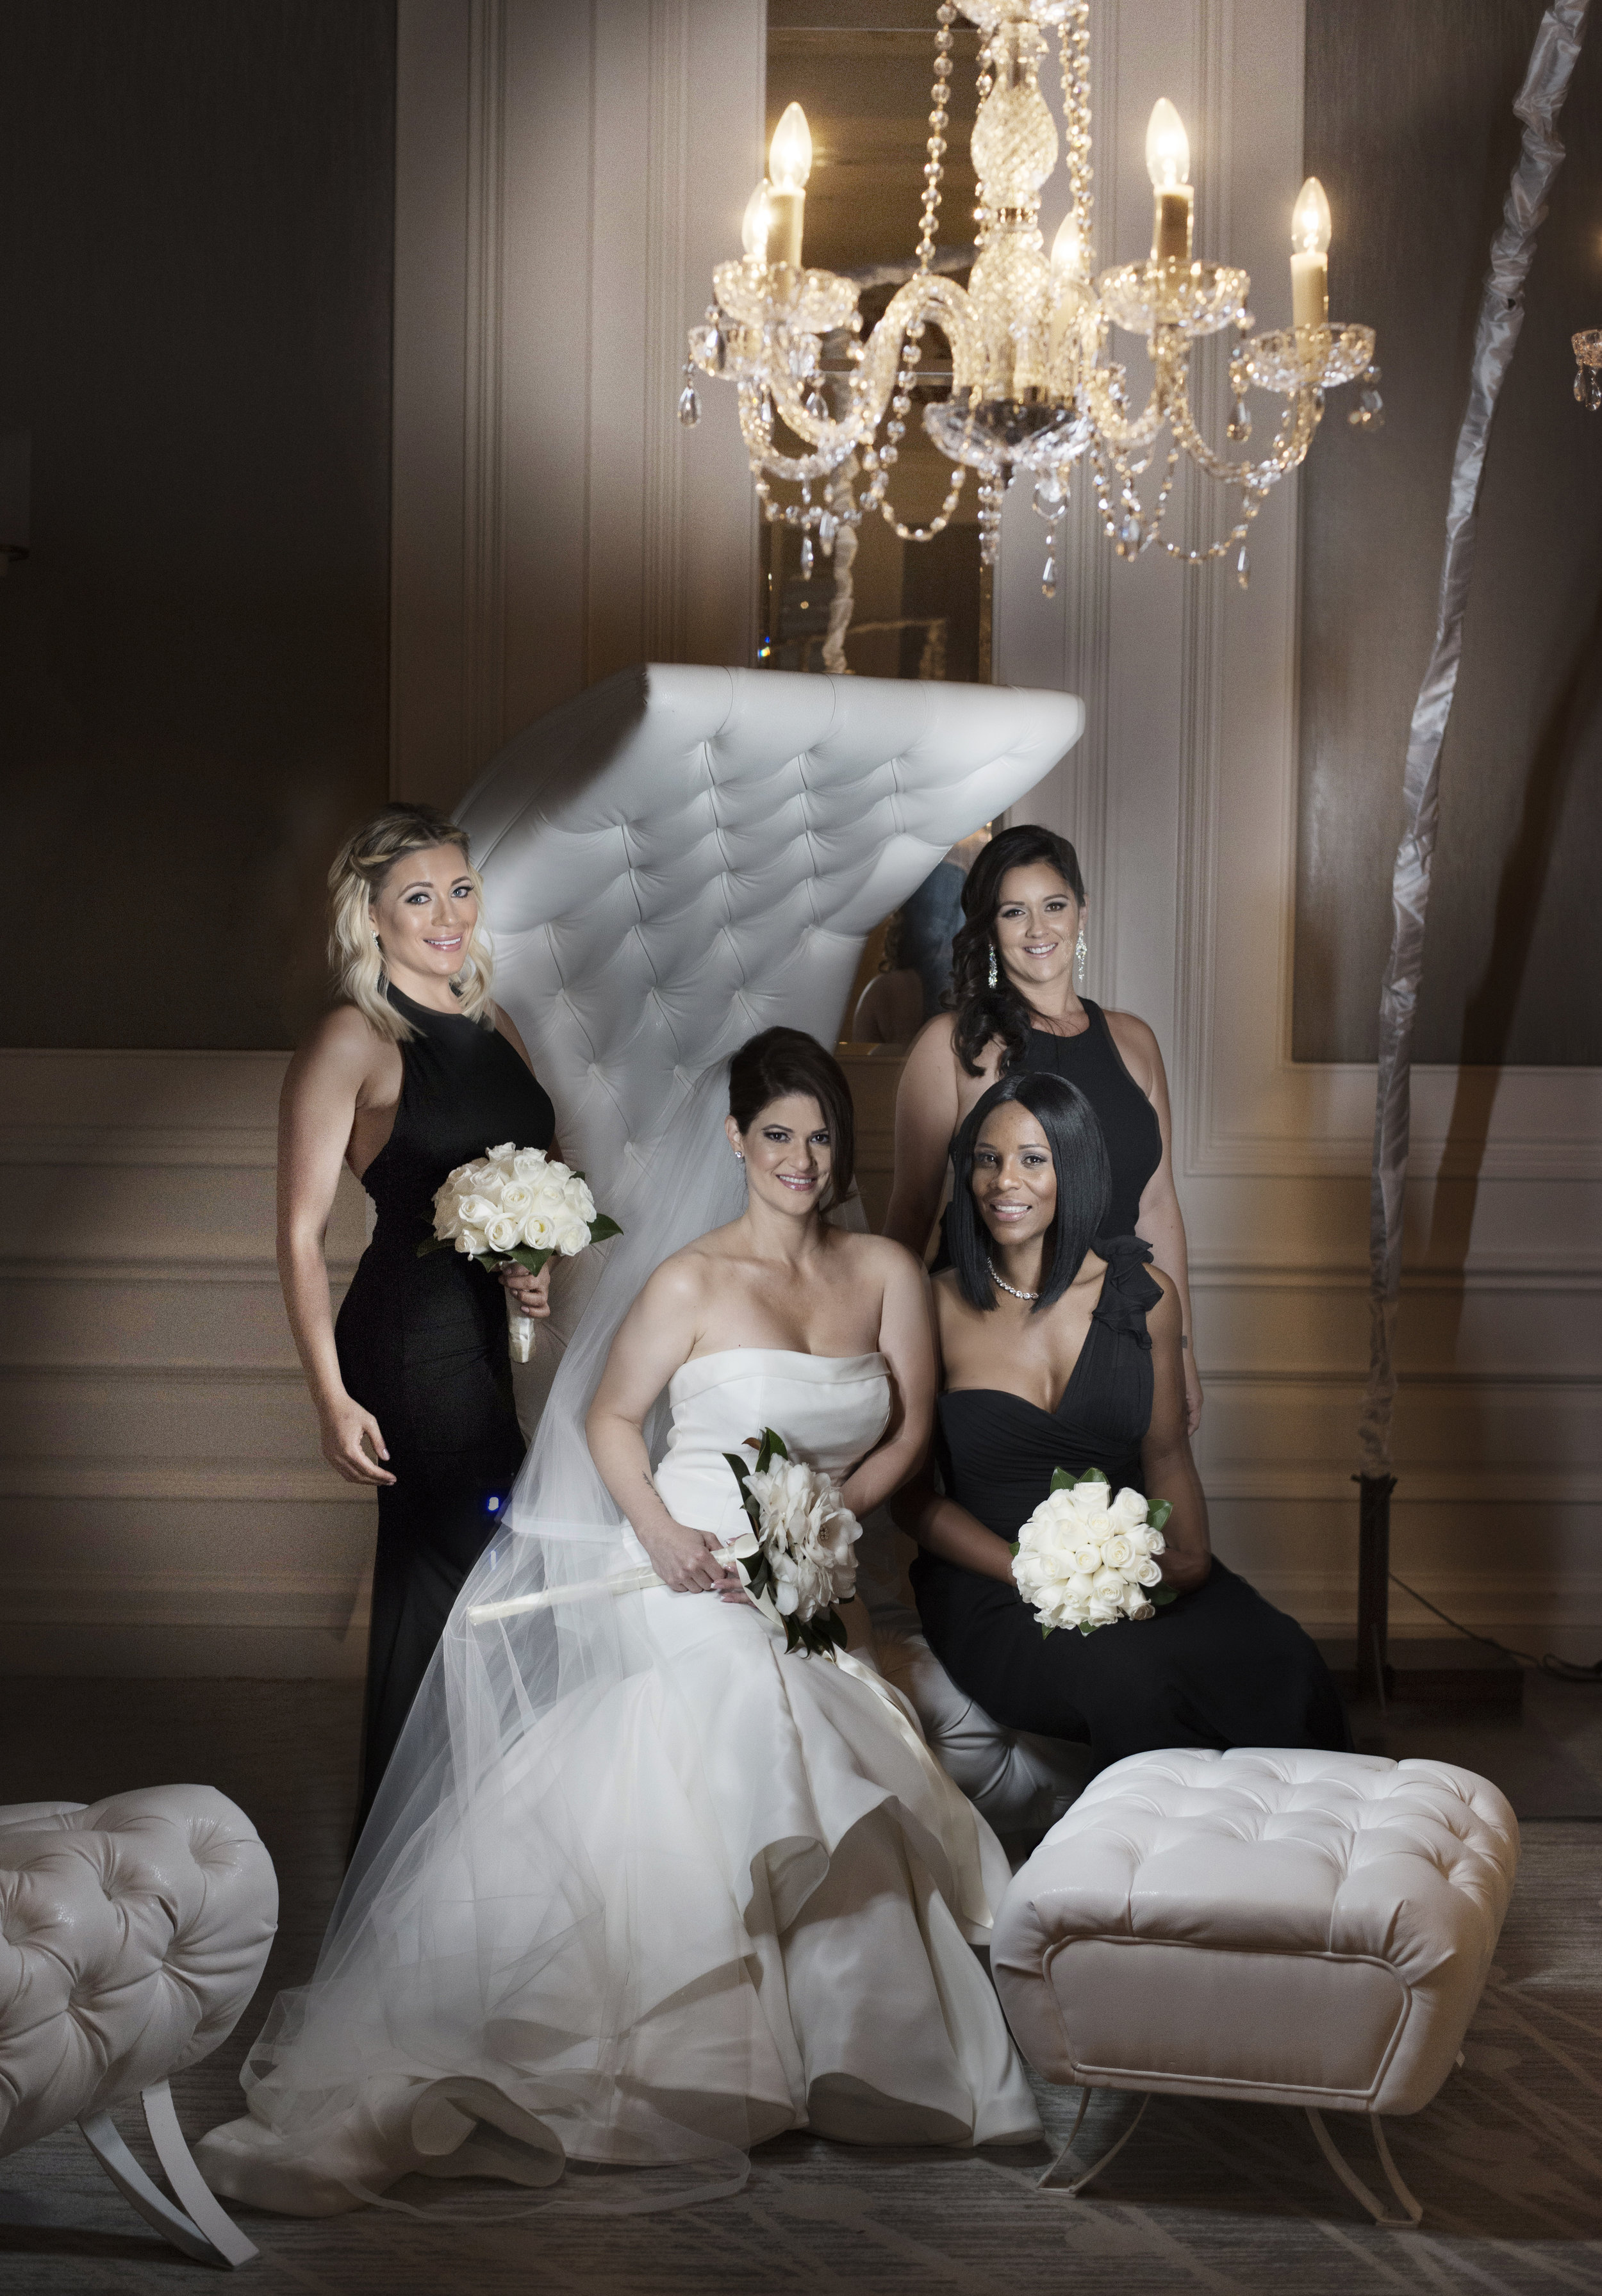 Bride and bridesmaid in chandelier seating area.  Four Seasons Wedding by Las Vegas Wedding Planner Andrea Eppolito. Image by AltF Photography. Decor by DBD Vegas.